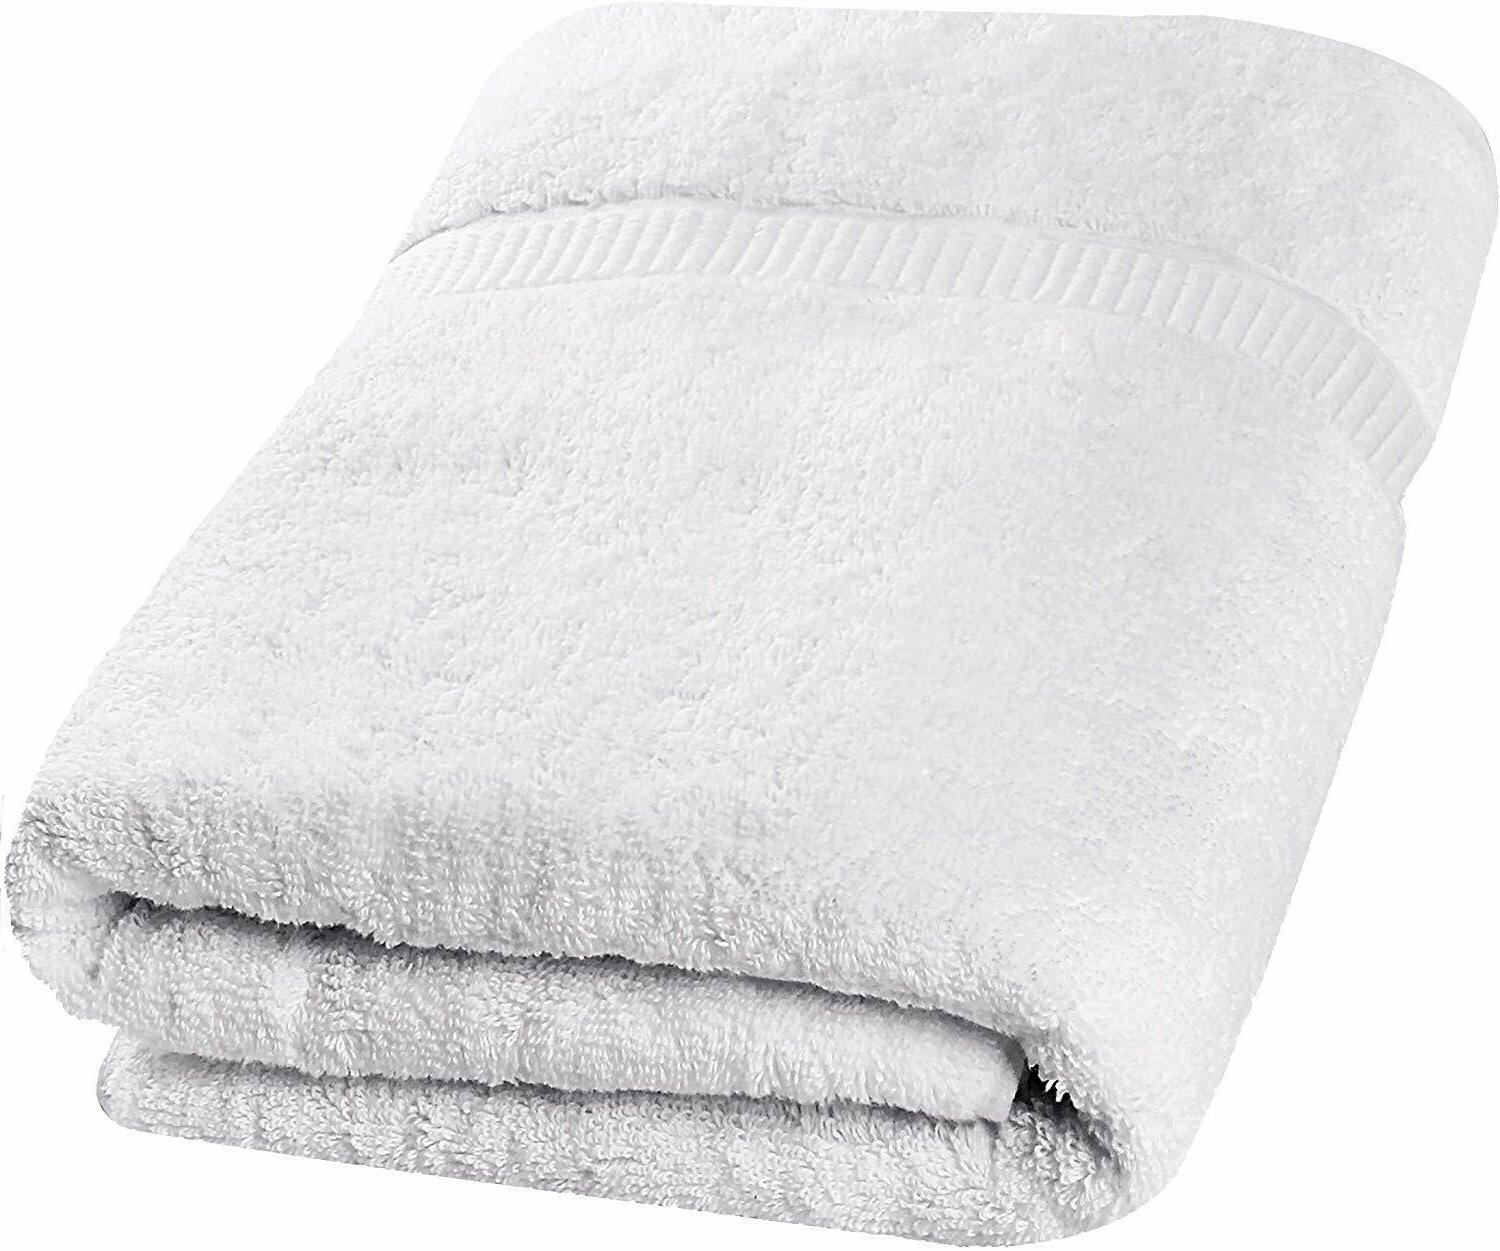 Extra Large Bath Sheet Towel Soft Absorbent Cotton 35 Inches Utopia